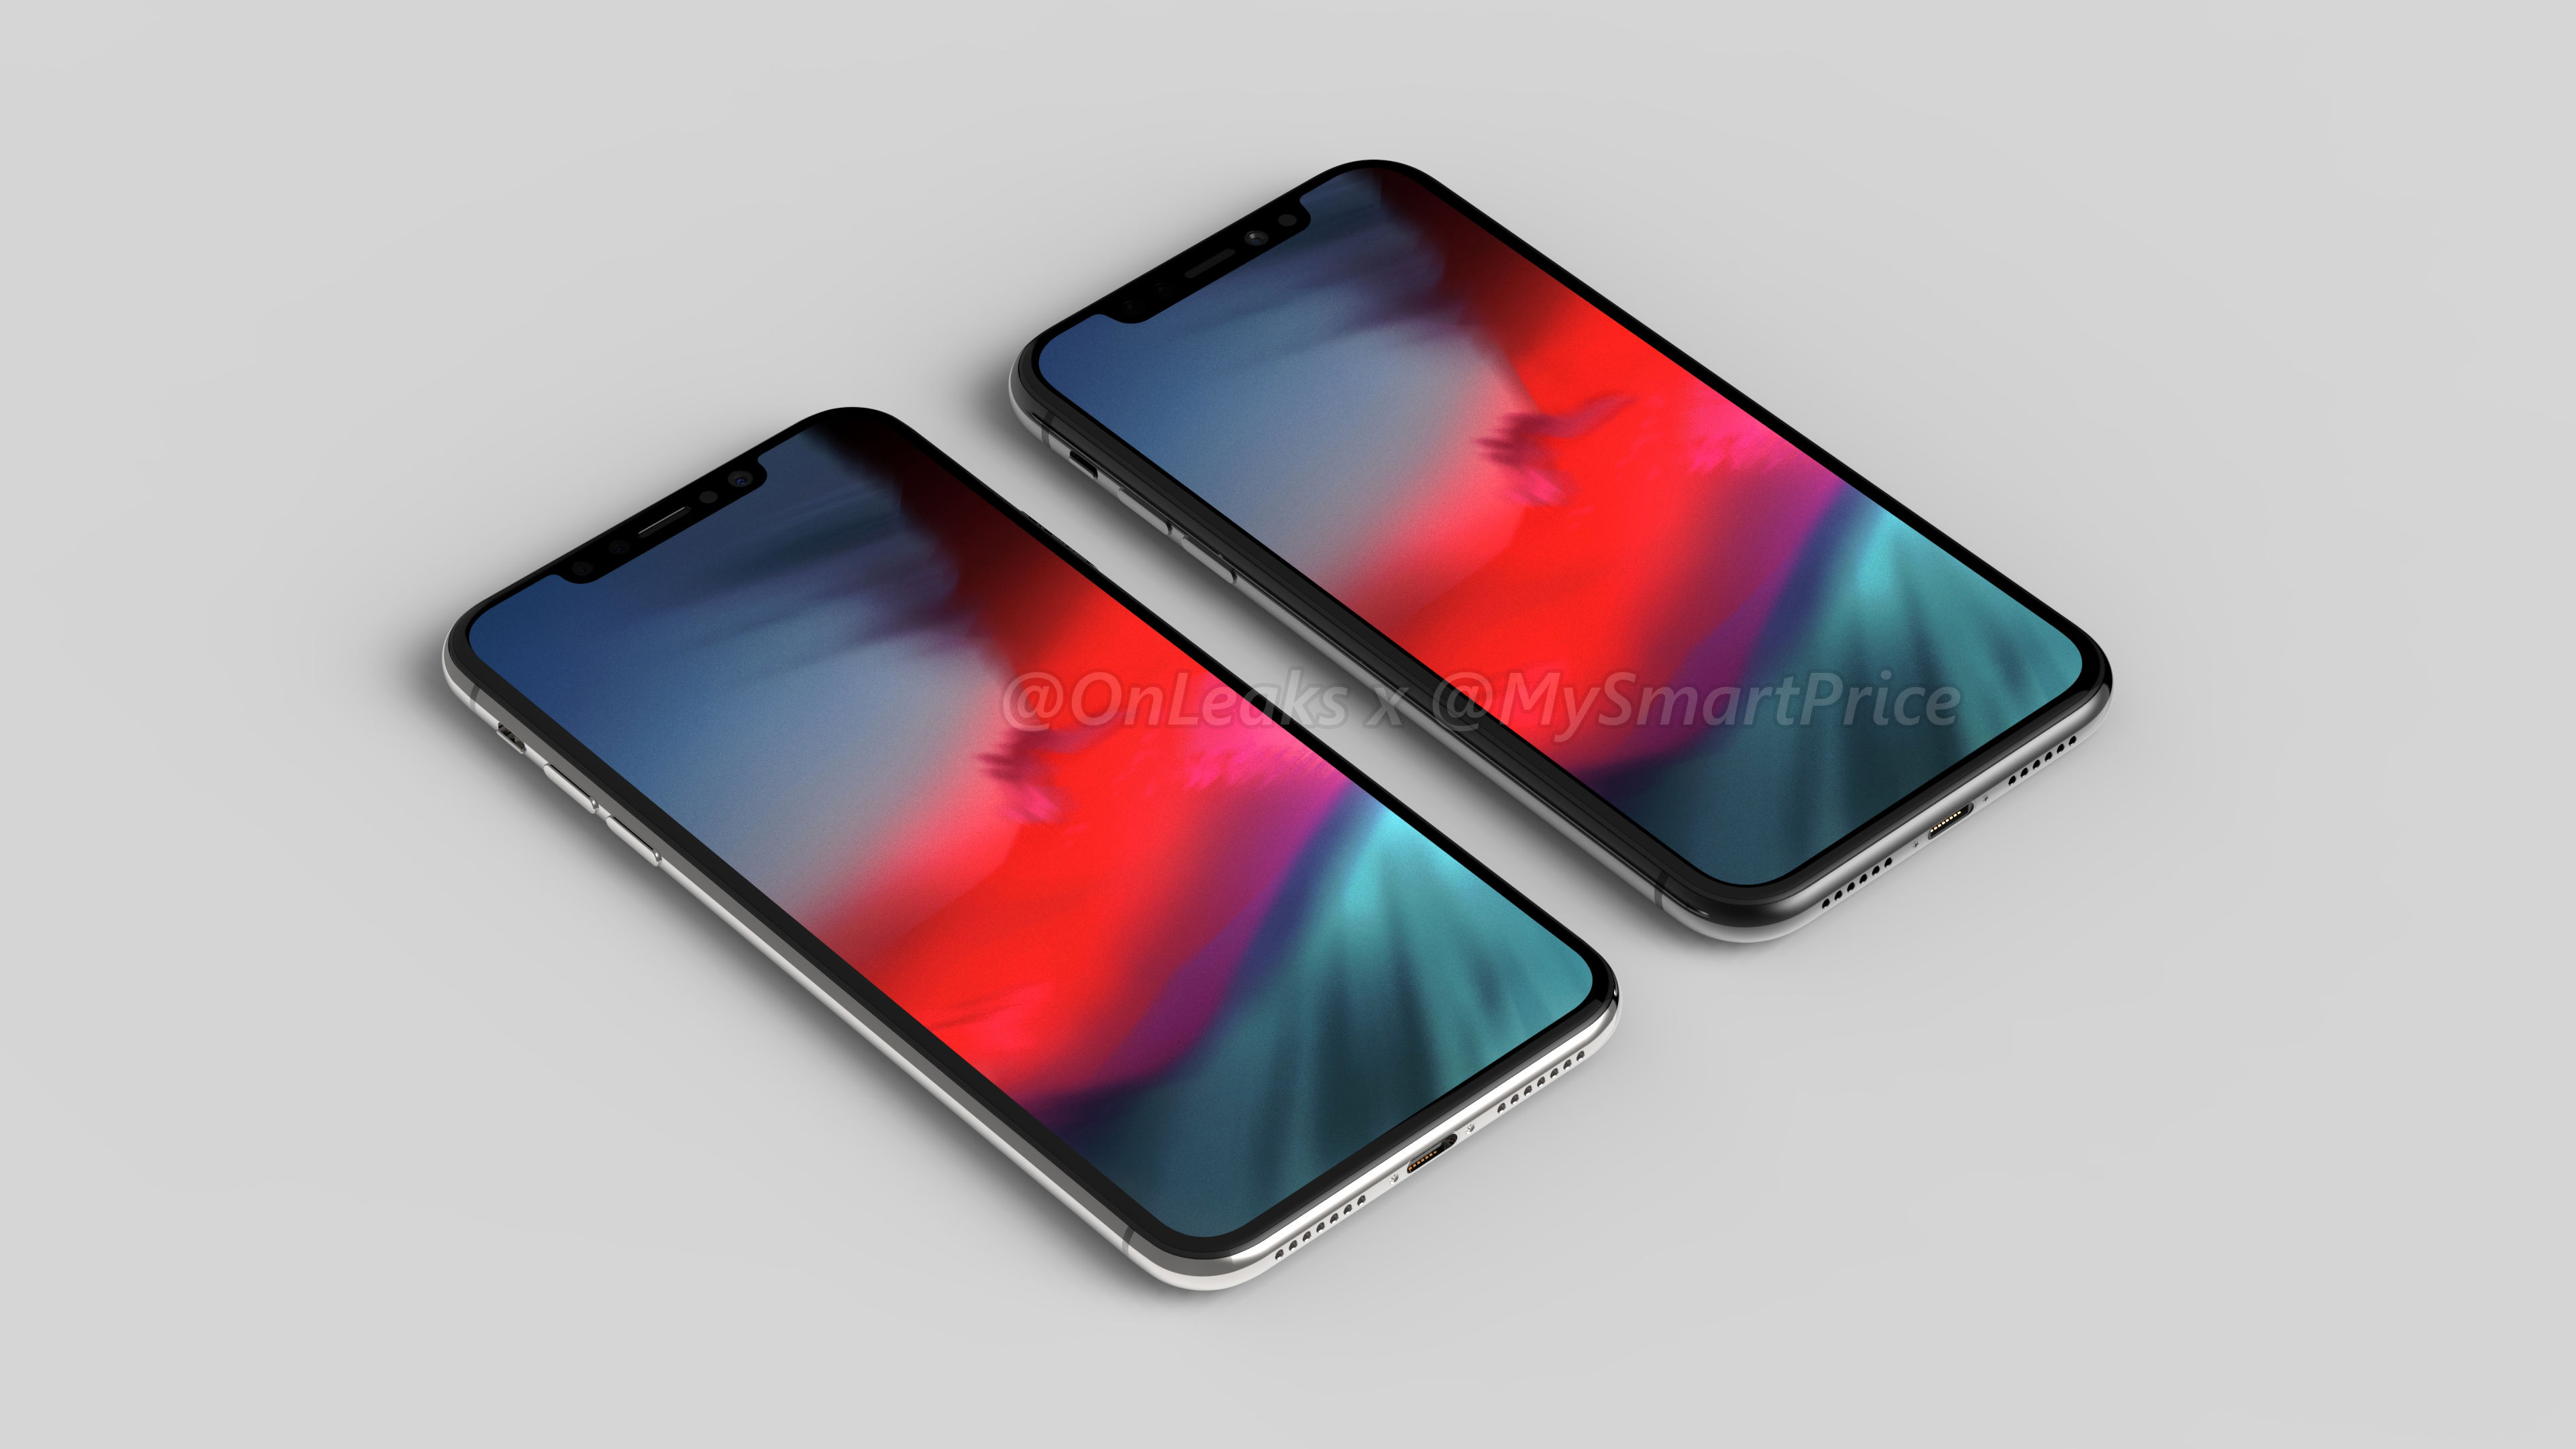 Apple iPhone X Plus, iPhone 9